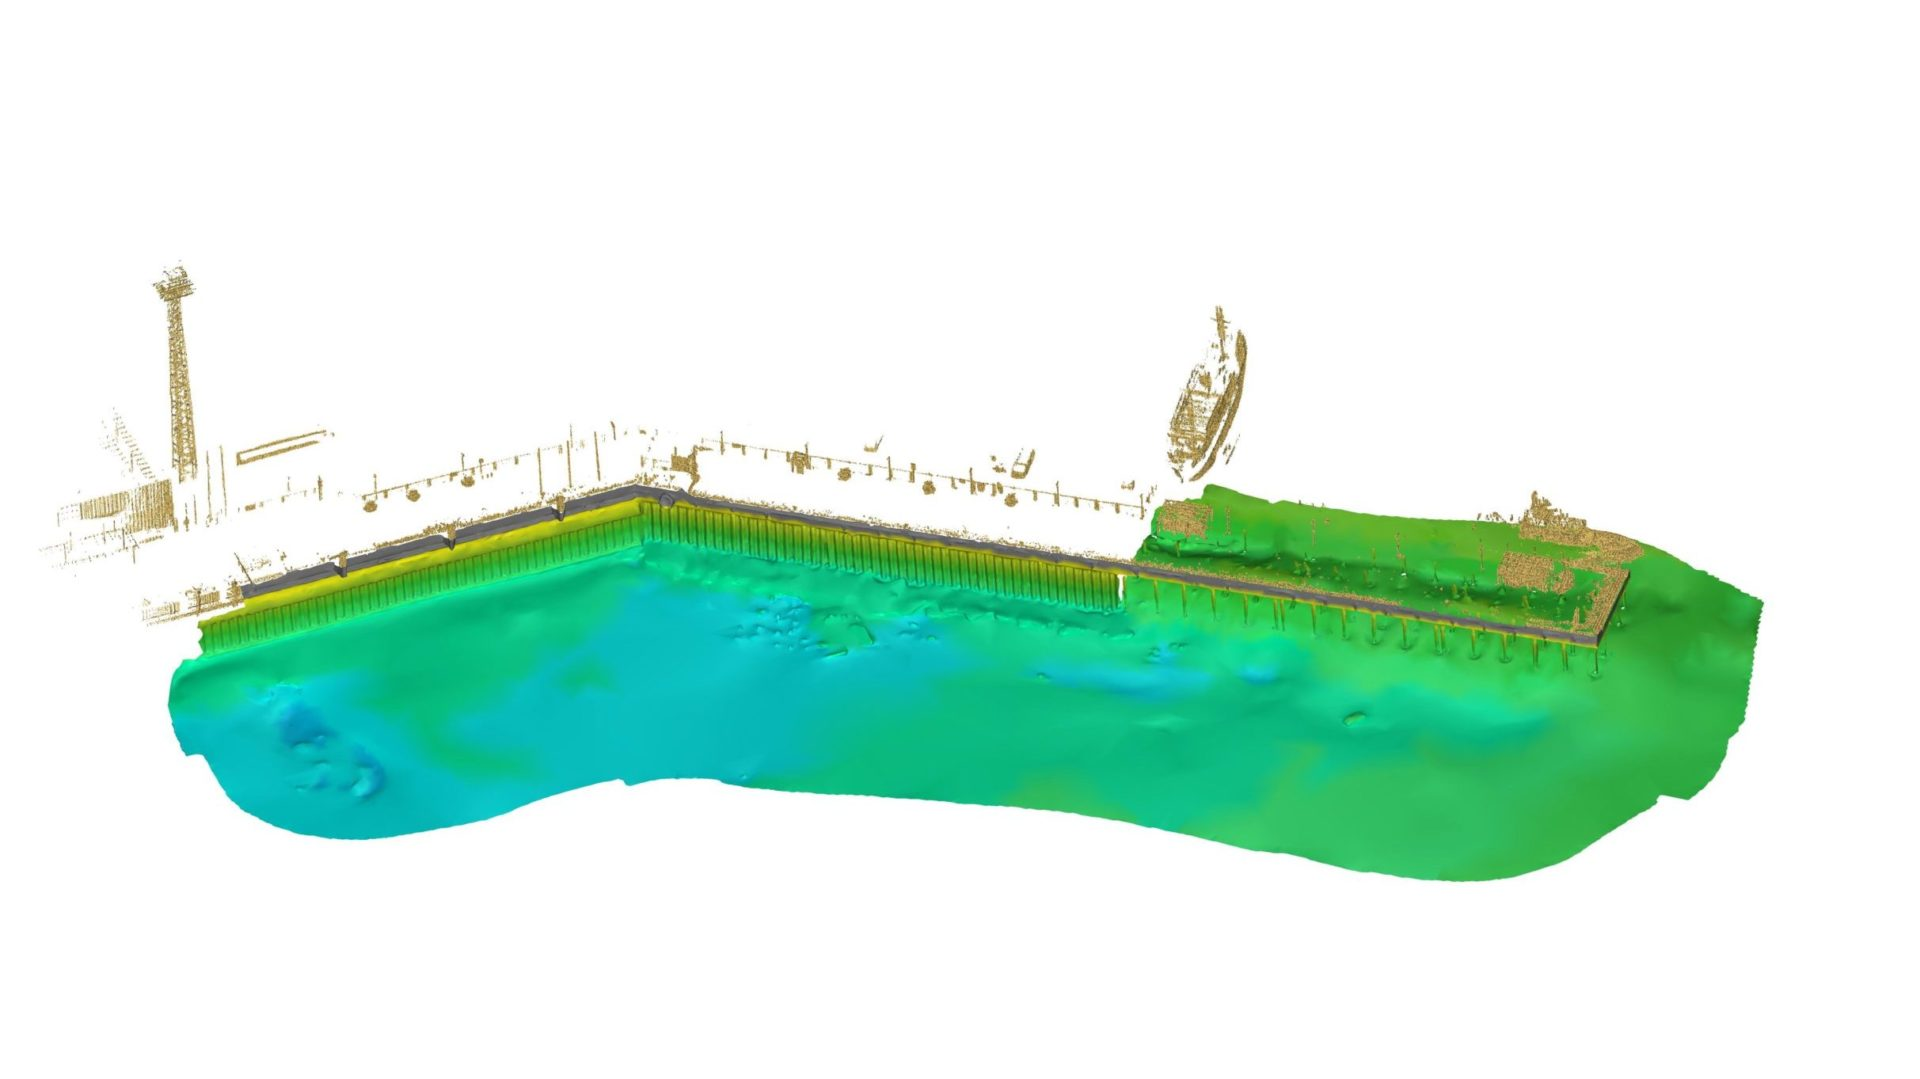 Combined MBES and LIDAR scan of pier EPL at Helsinki port